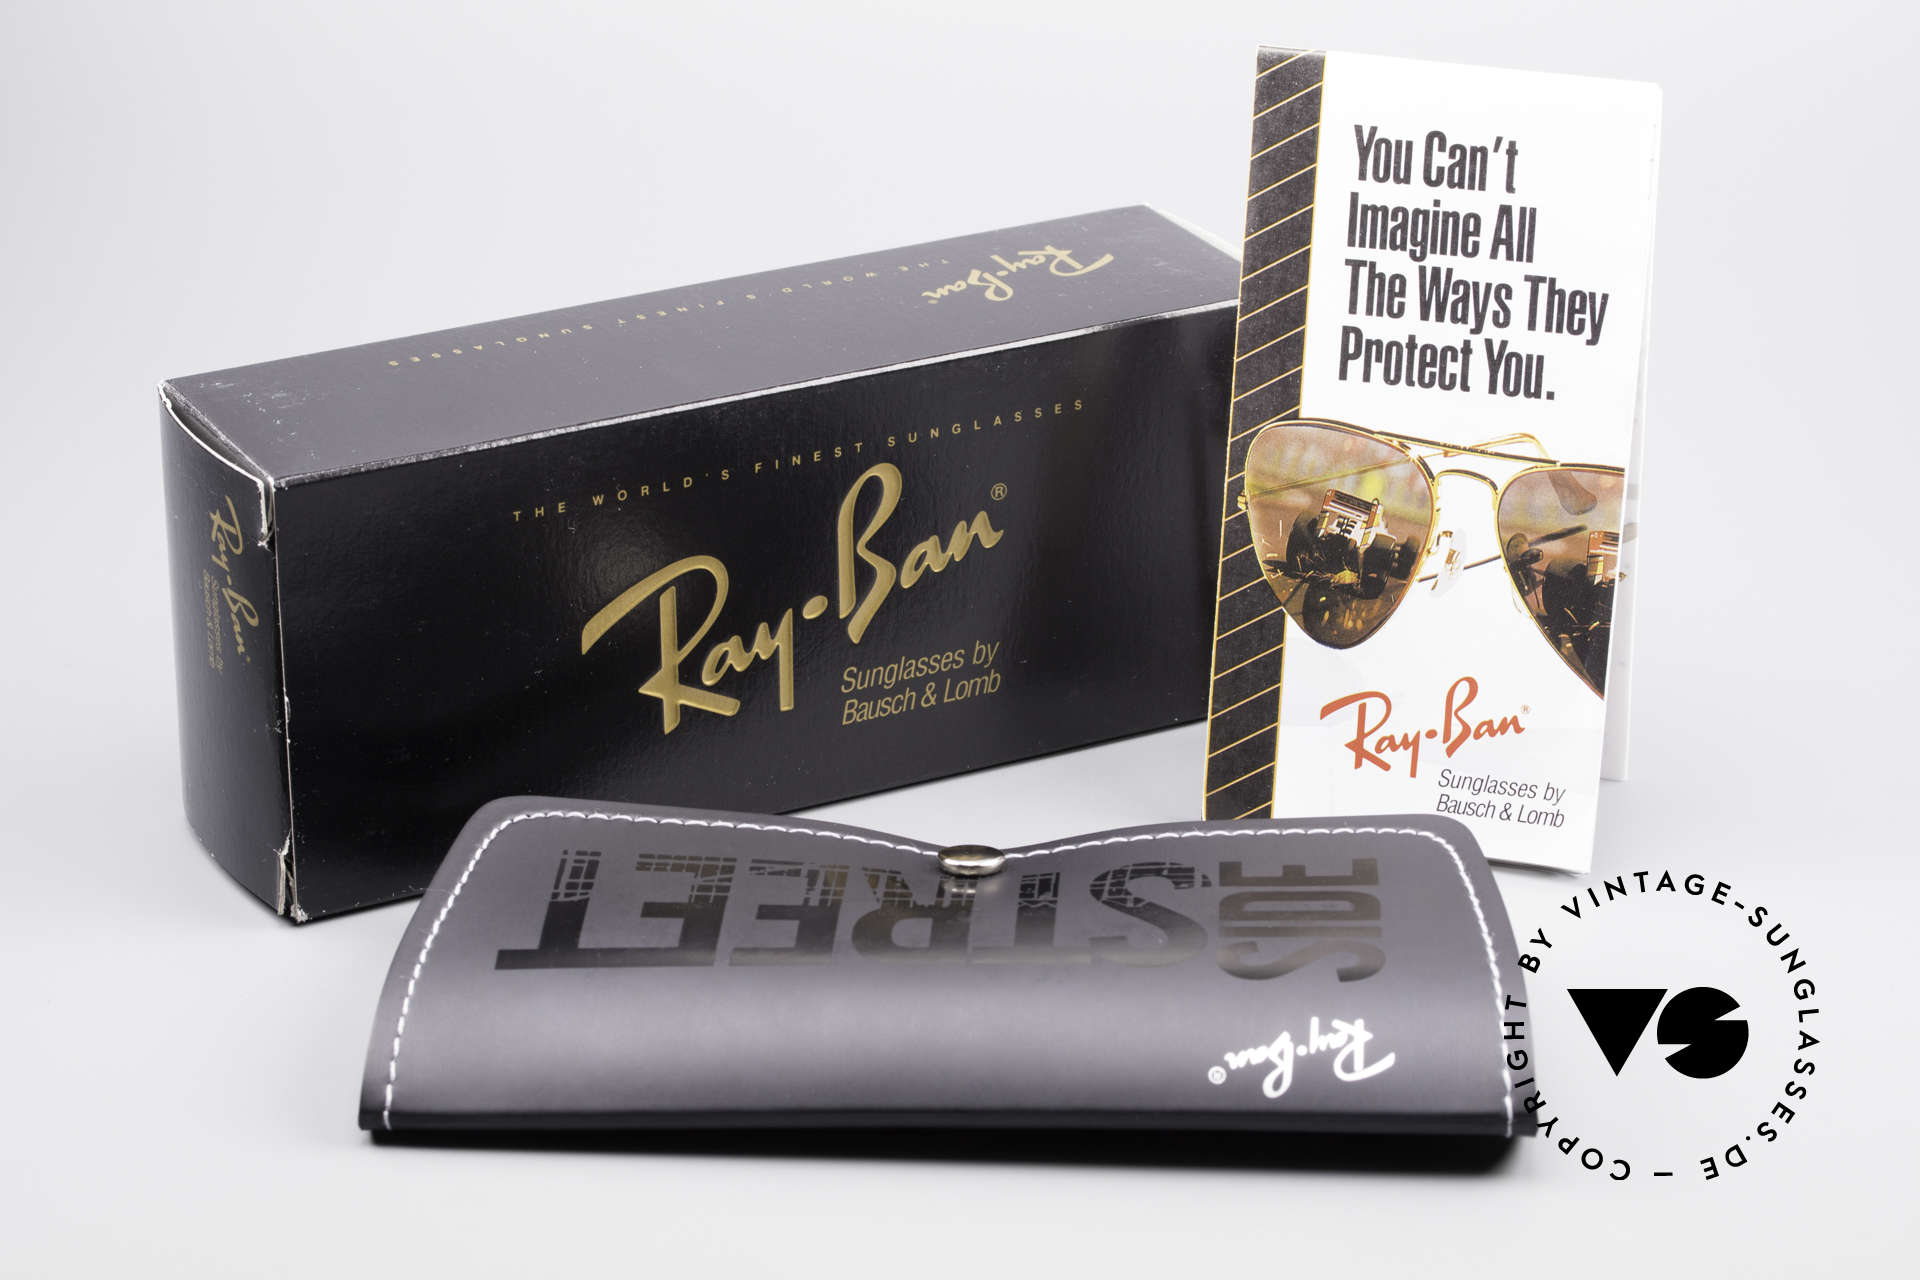 Ray Ban Classic Style I Mirrored B&L USA Sunglasses, RB name: W2459, gunmetal, full mirrored silver, Made for Men and Women